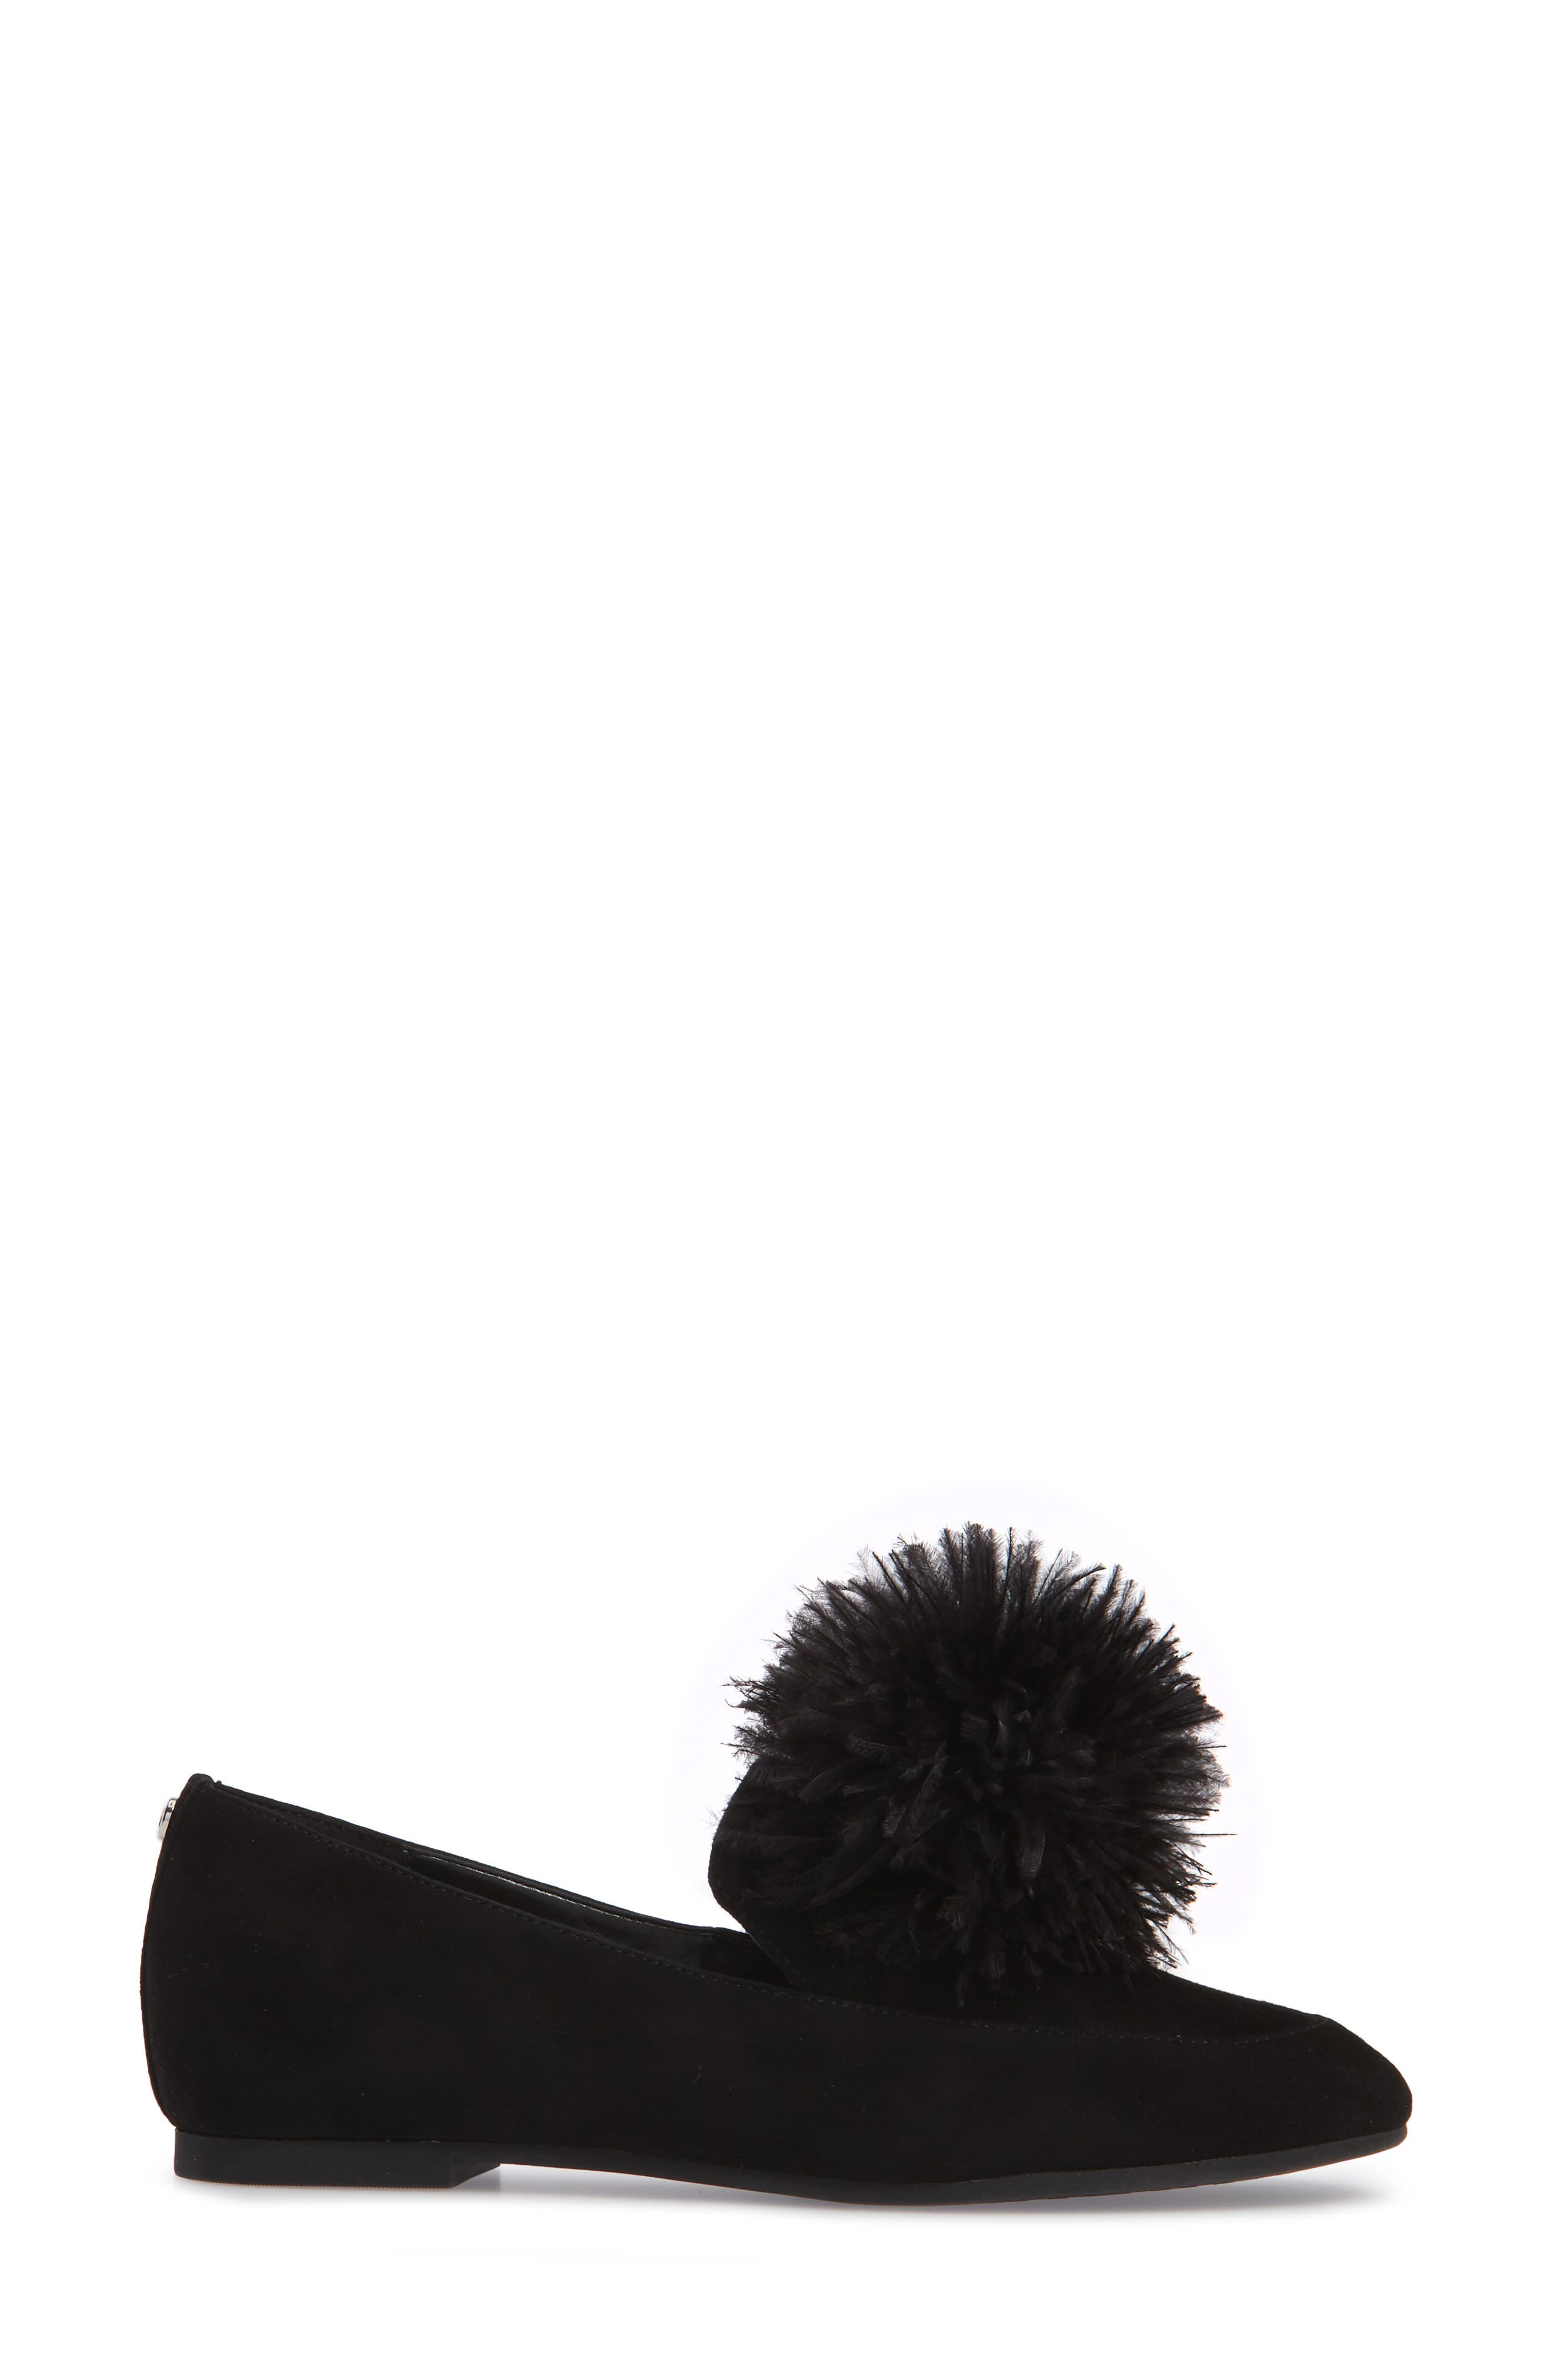 Fara Feather Pom Loafer,                             Alternate thumbnail 3, color,                             001